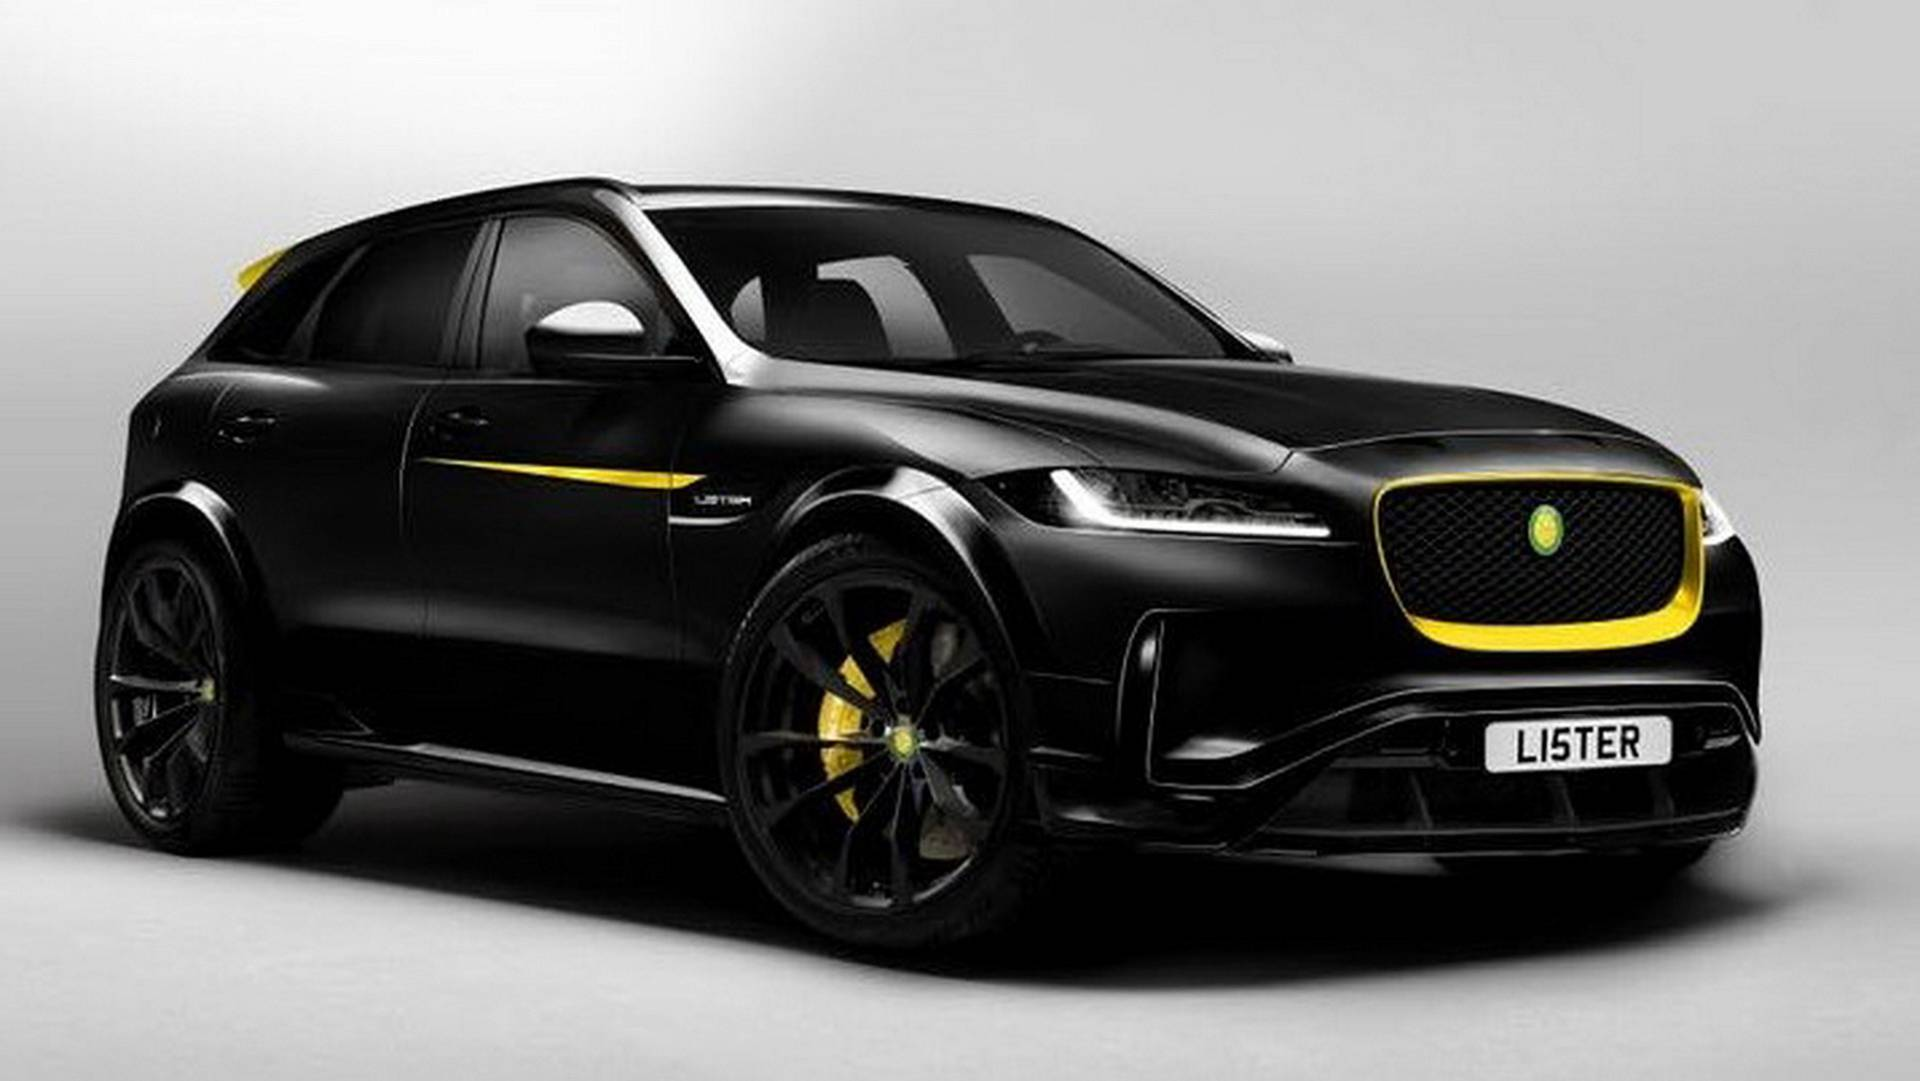 Jaguar Suv F Pace >> Lister Jaguar F Pace Previewed With 200 Mph Top Speed 670 Hp